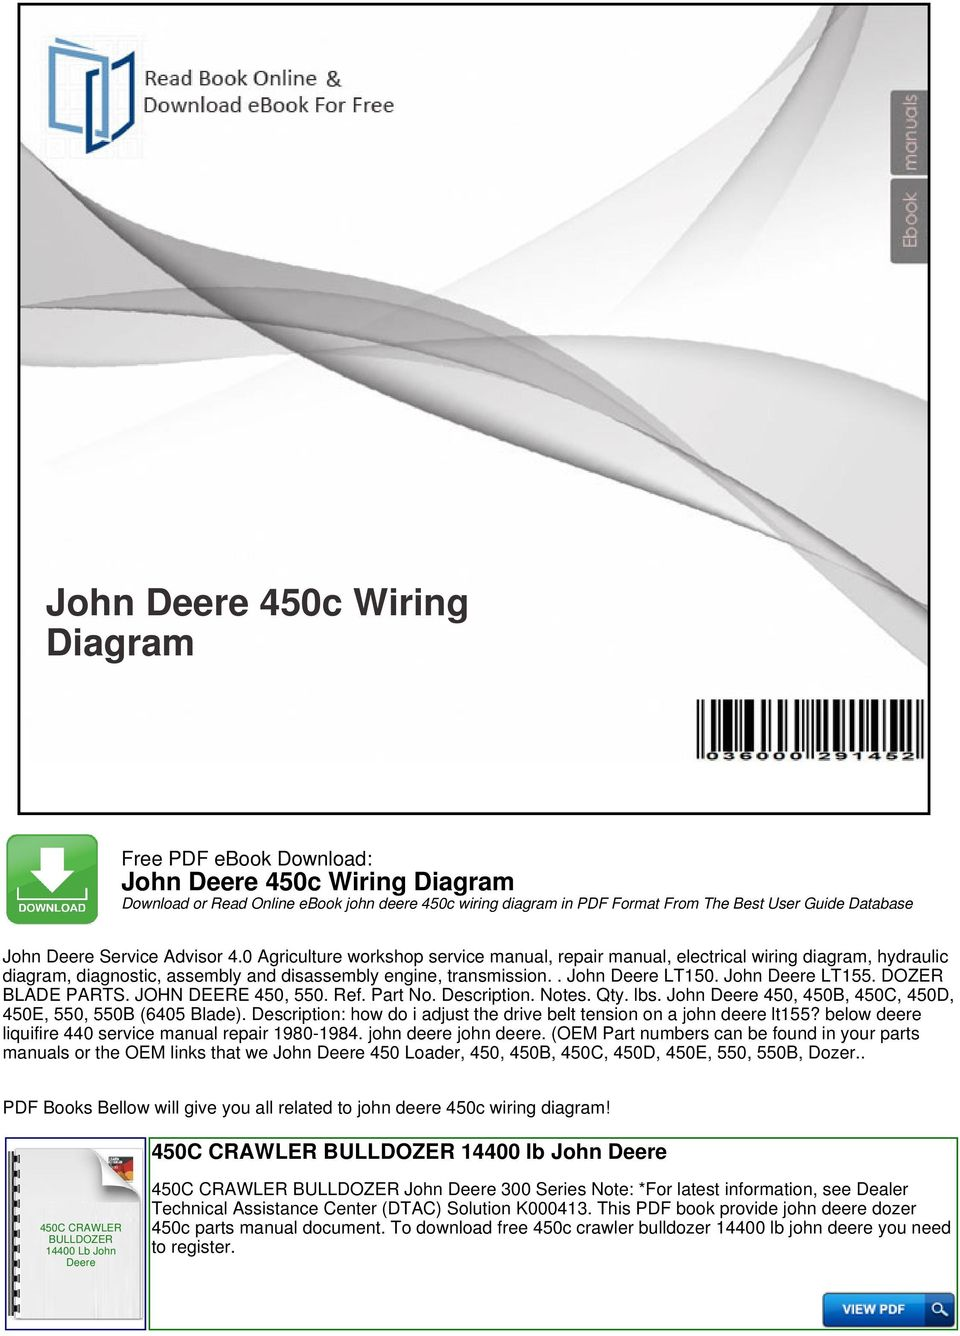 john deere 450c wiring diagram pdf john deere 450 550 ref part no description